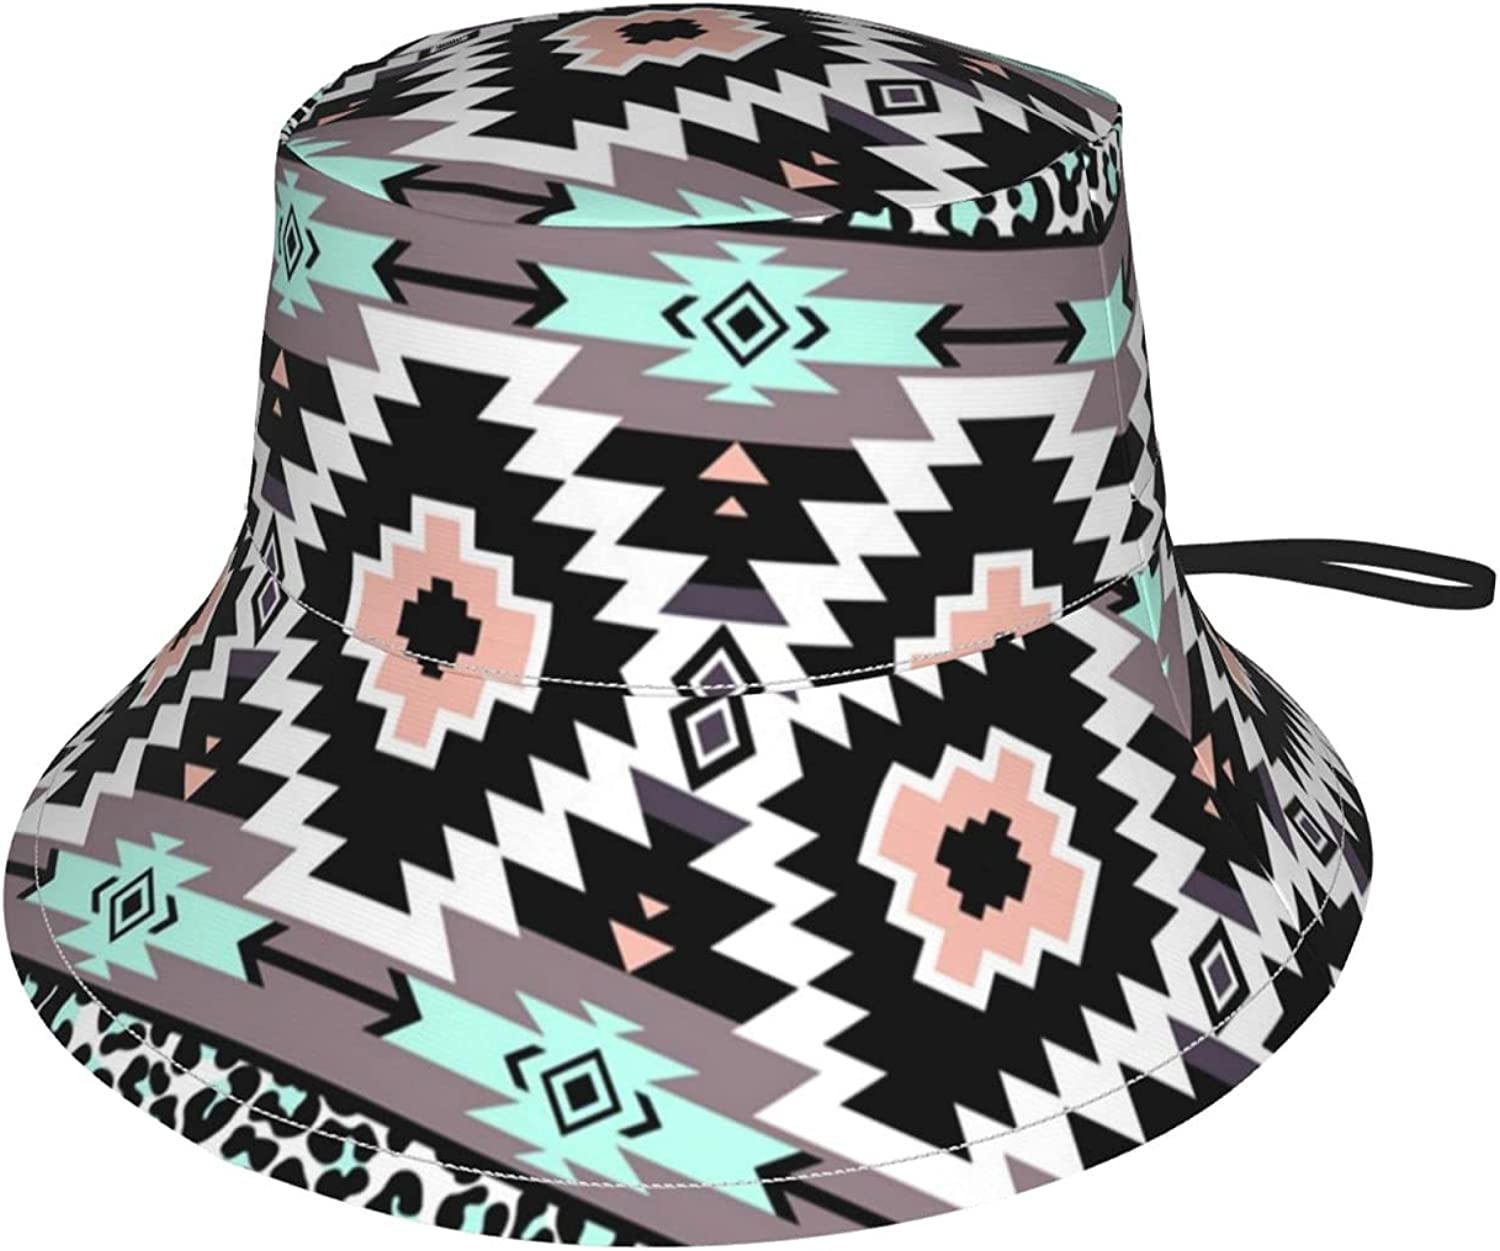 Native American Max 44% OFF Patterns Kids Sun Discount is also underway Breathable Buc Adjustable Hat